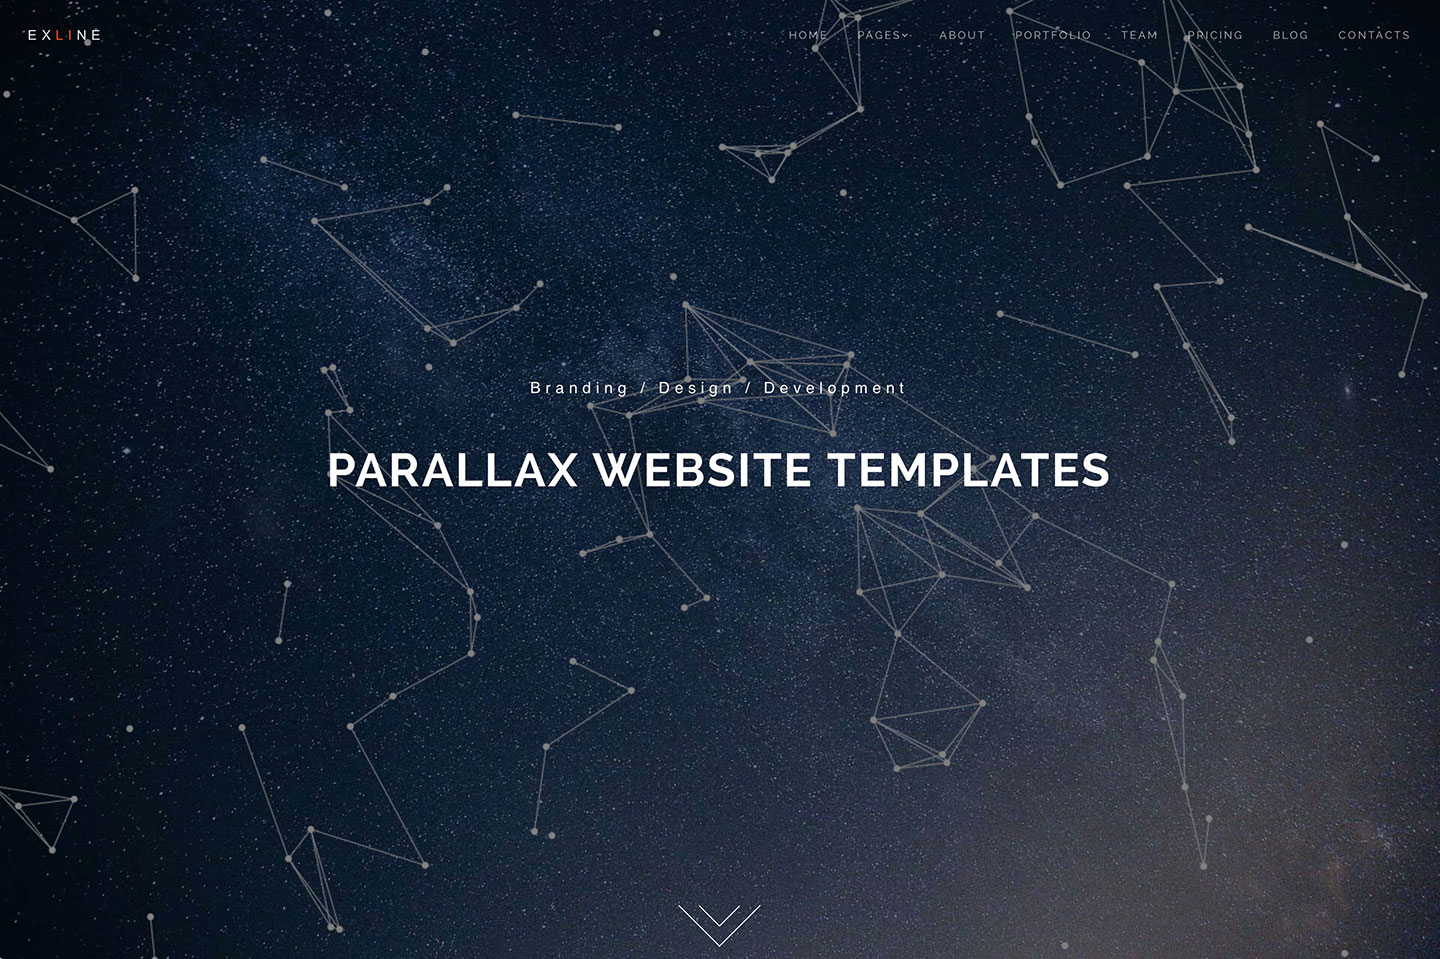 30 Minimal HTML5/CSS3 Parallax Website Templates 2018 - Colorlib on custom htmlhelper, custom text, custom script, custom fireworks,